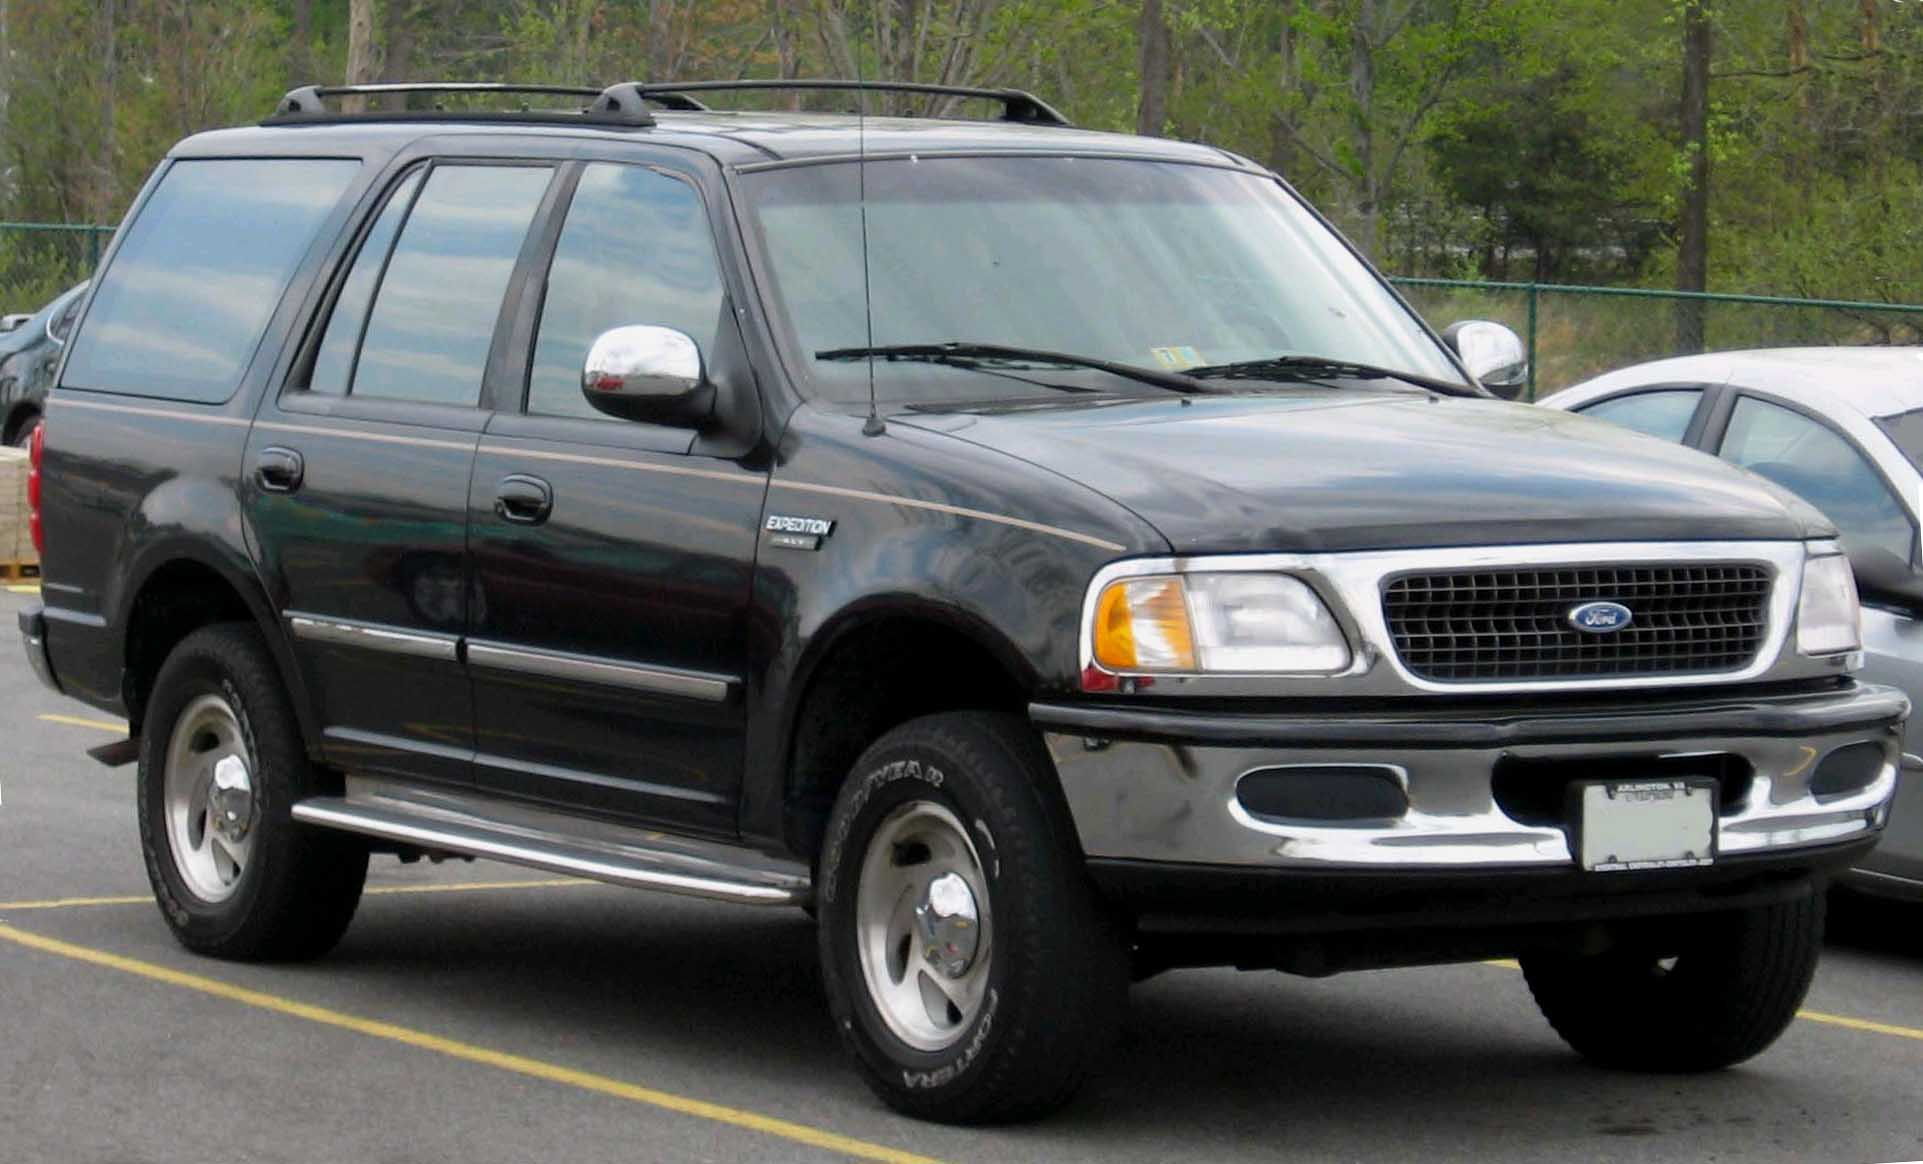 Ford Expedition #3